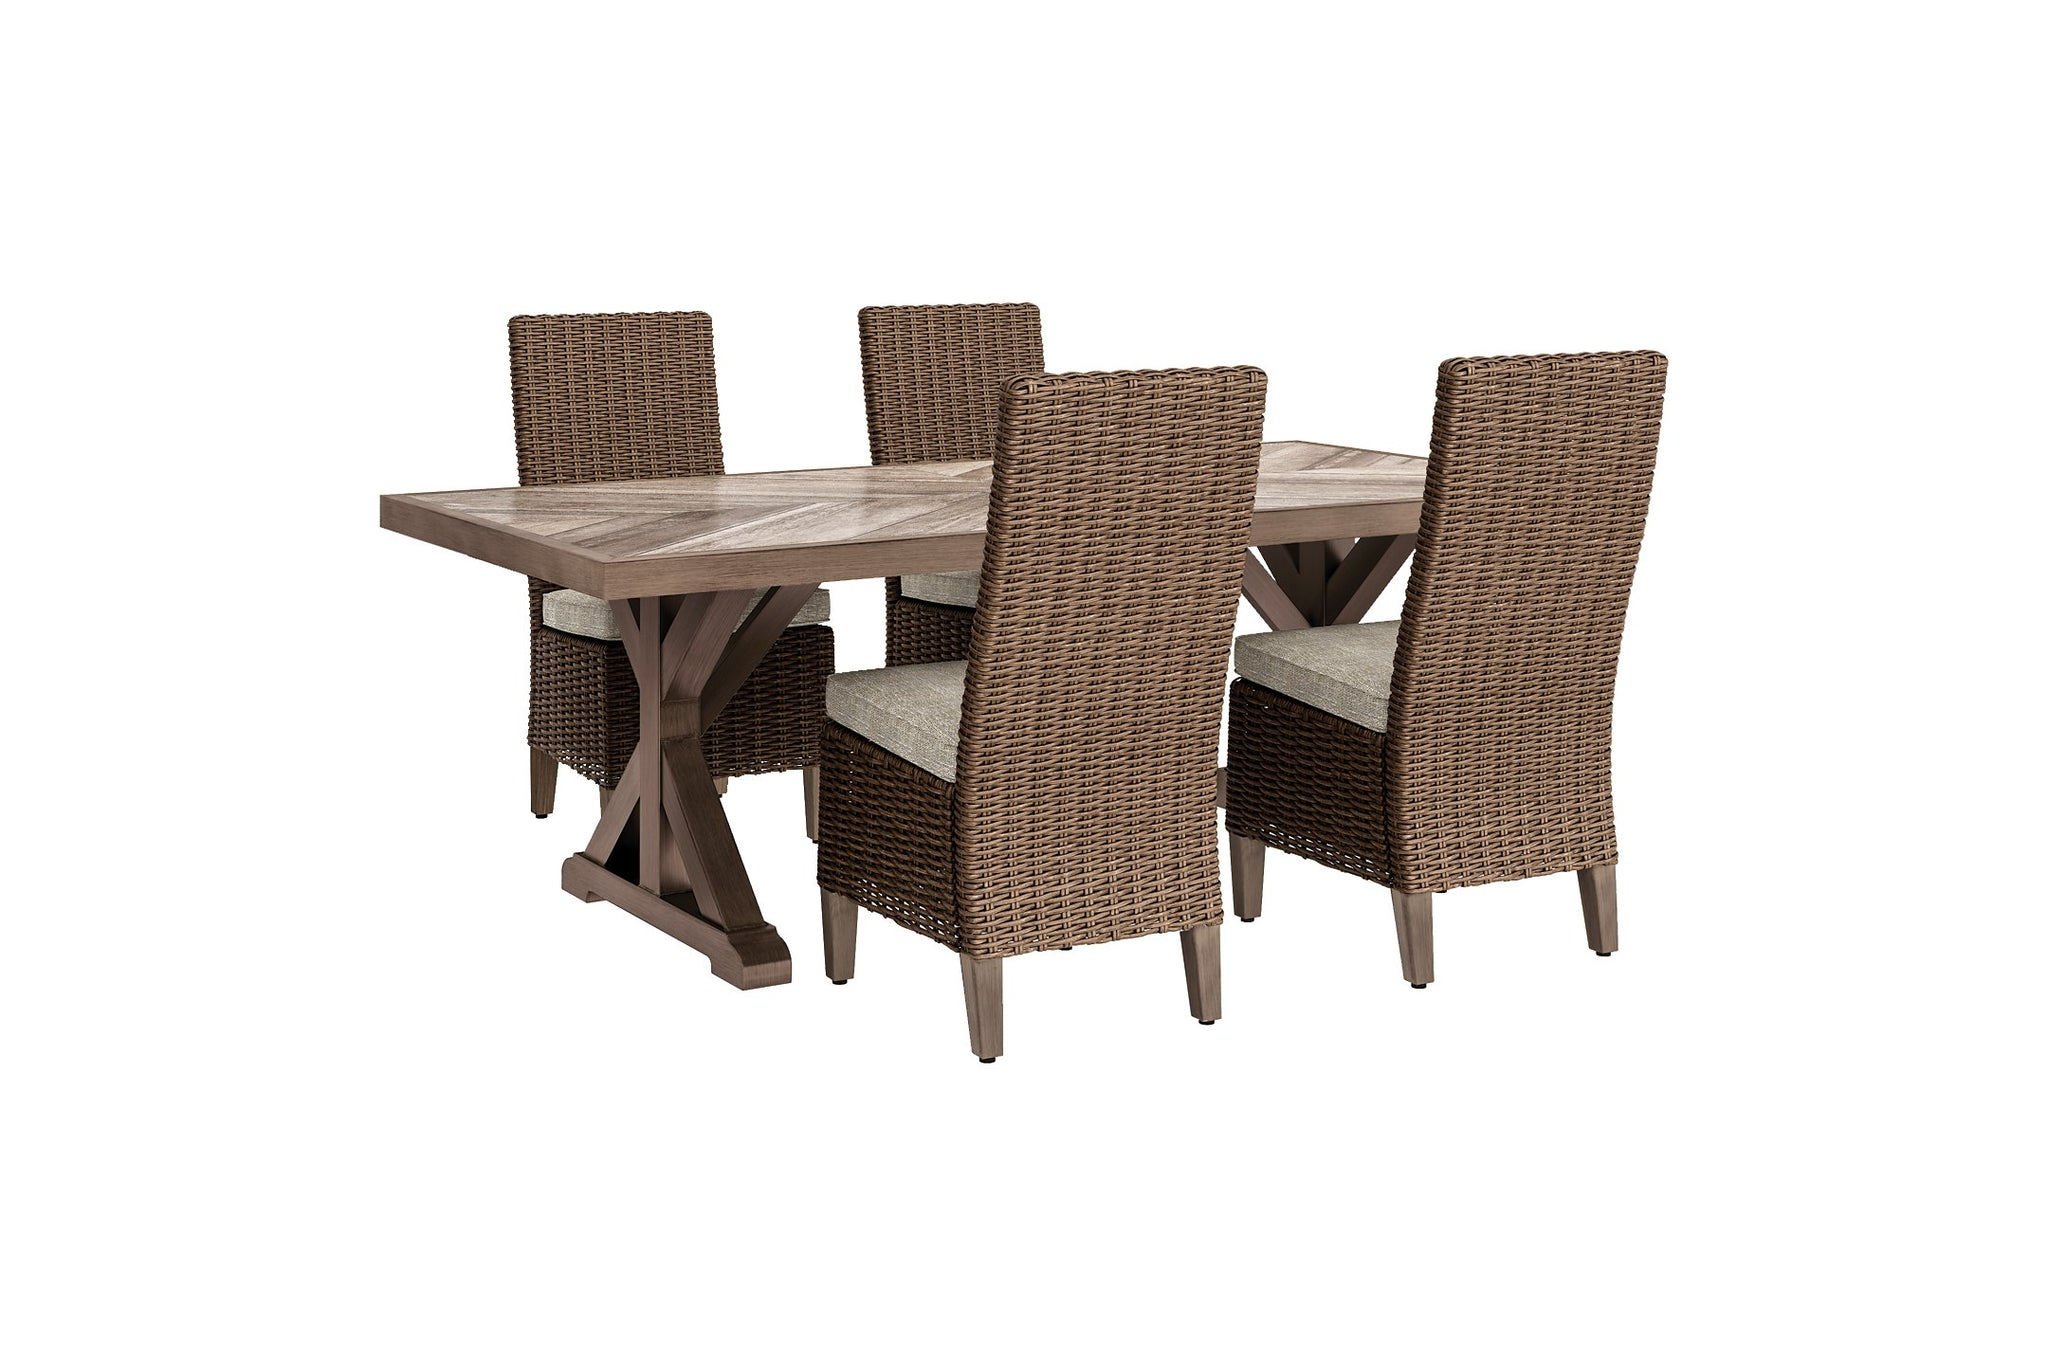 Beachcroft Signature Design Dining Table 5-Piece Outdoor Dining Set